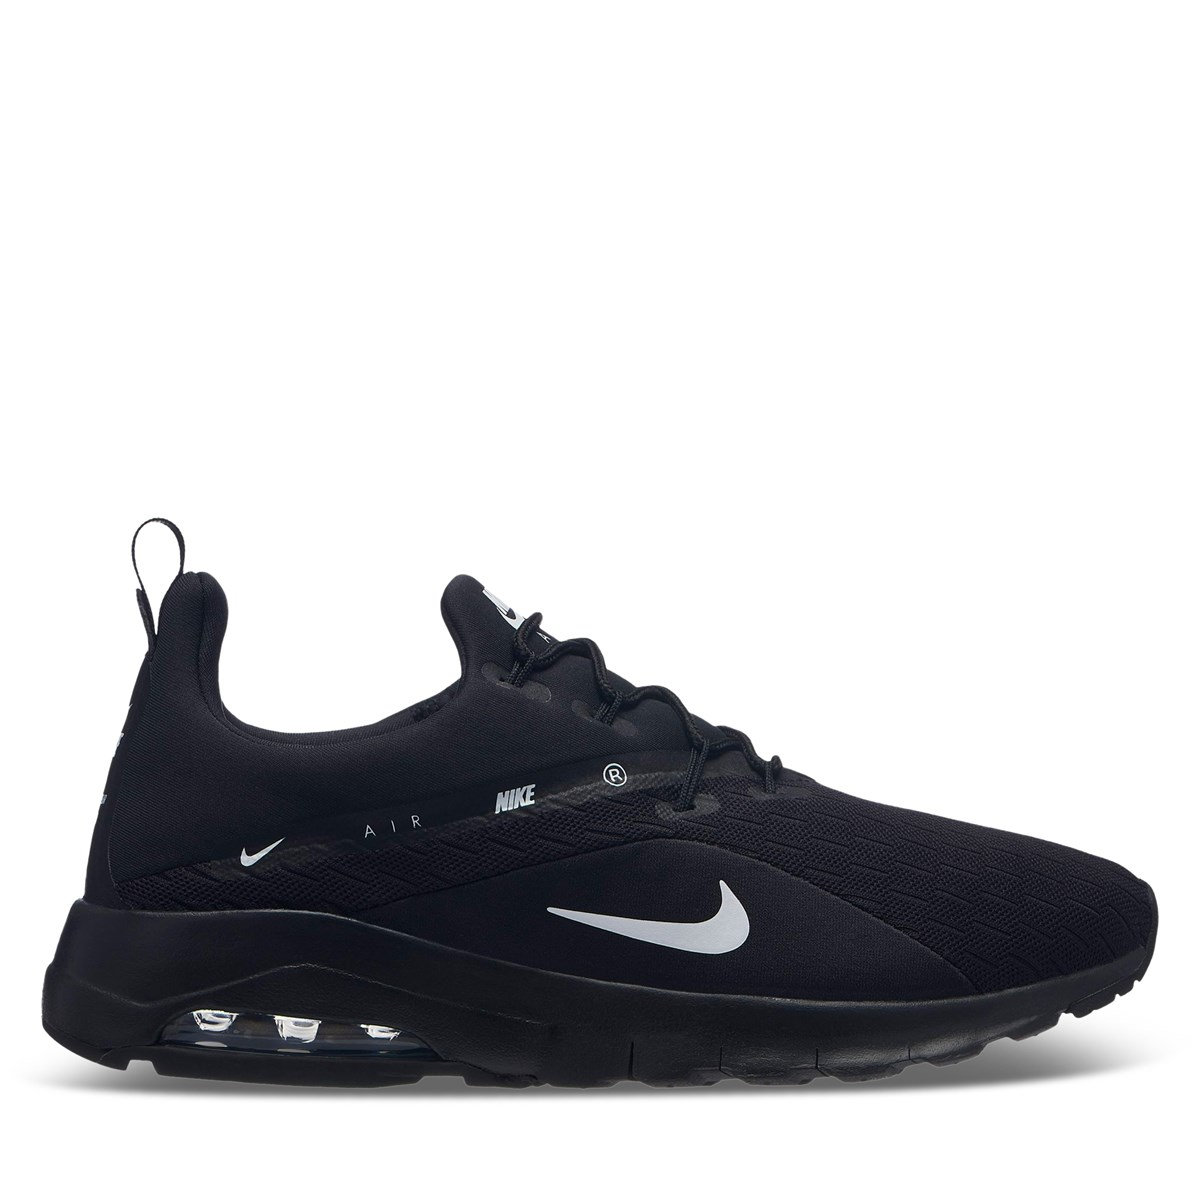 quality design 909e2 61dcc Women s Air Max Motion Racer 2 in Black   Little Burgundy